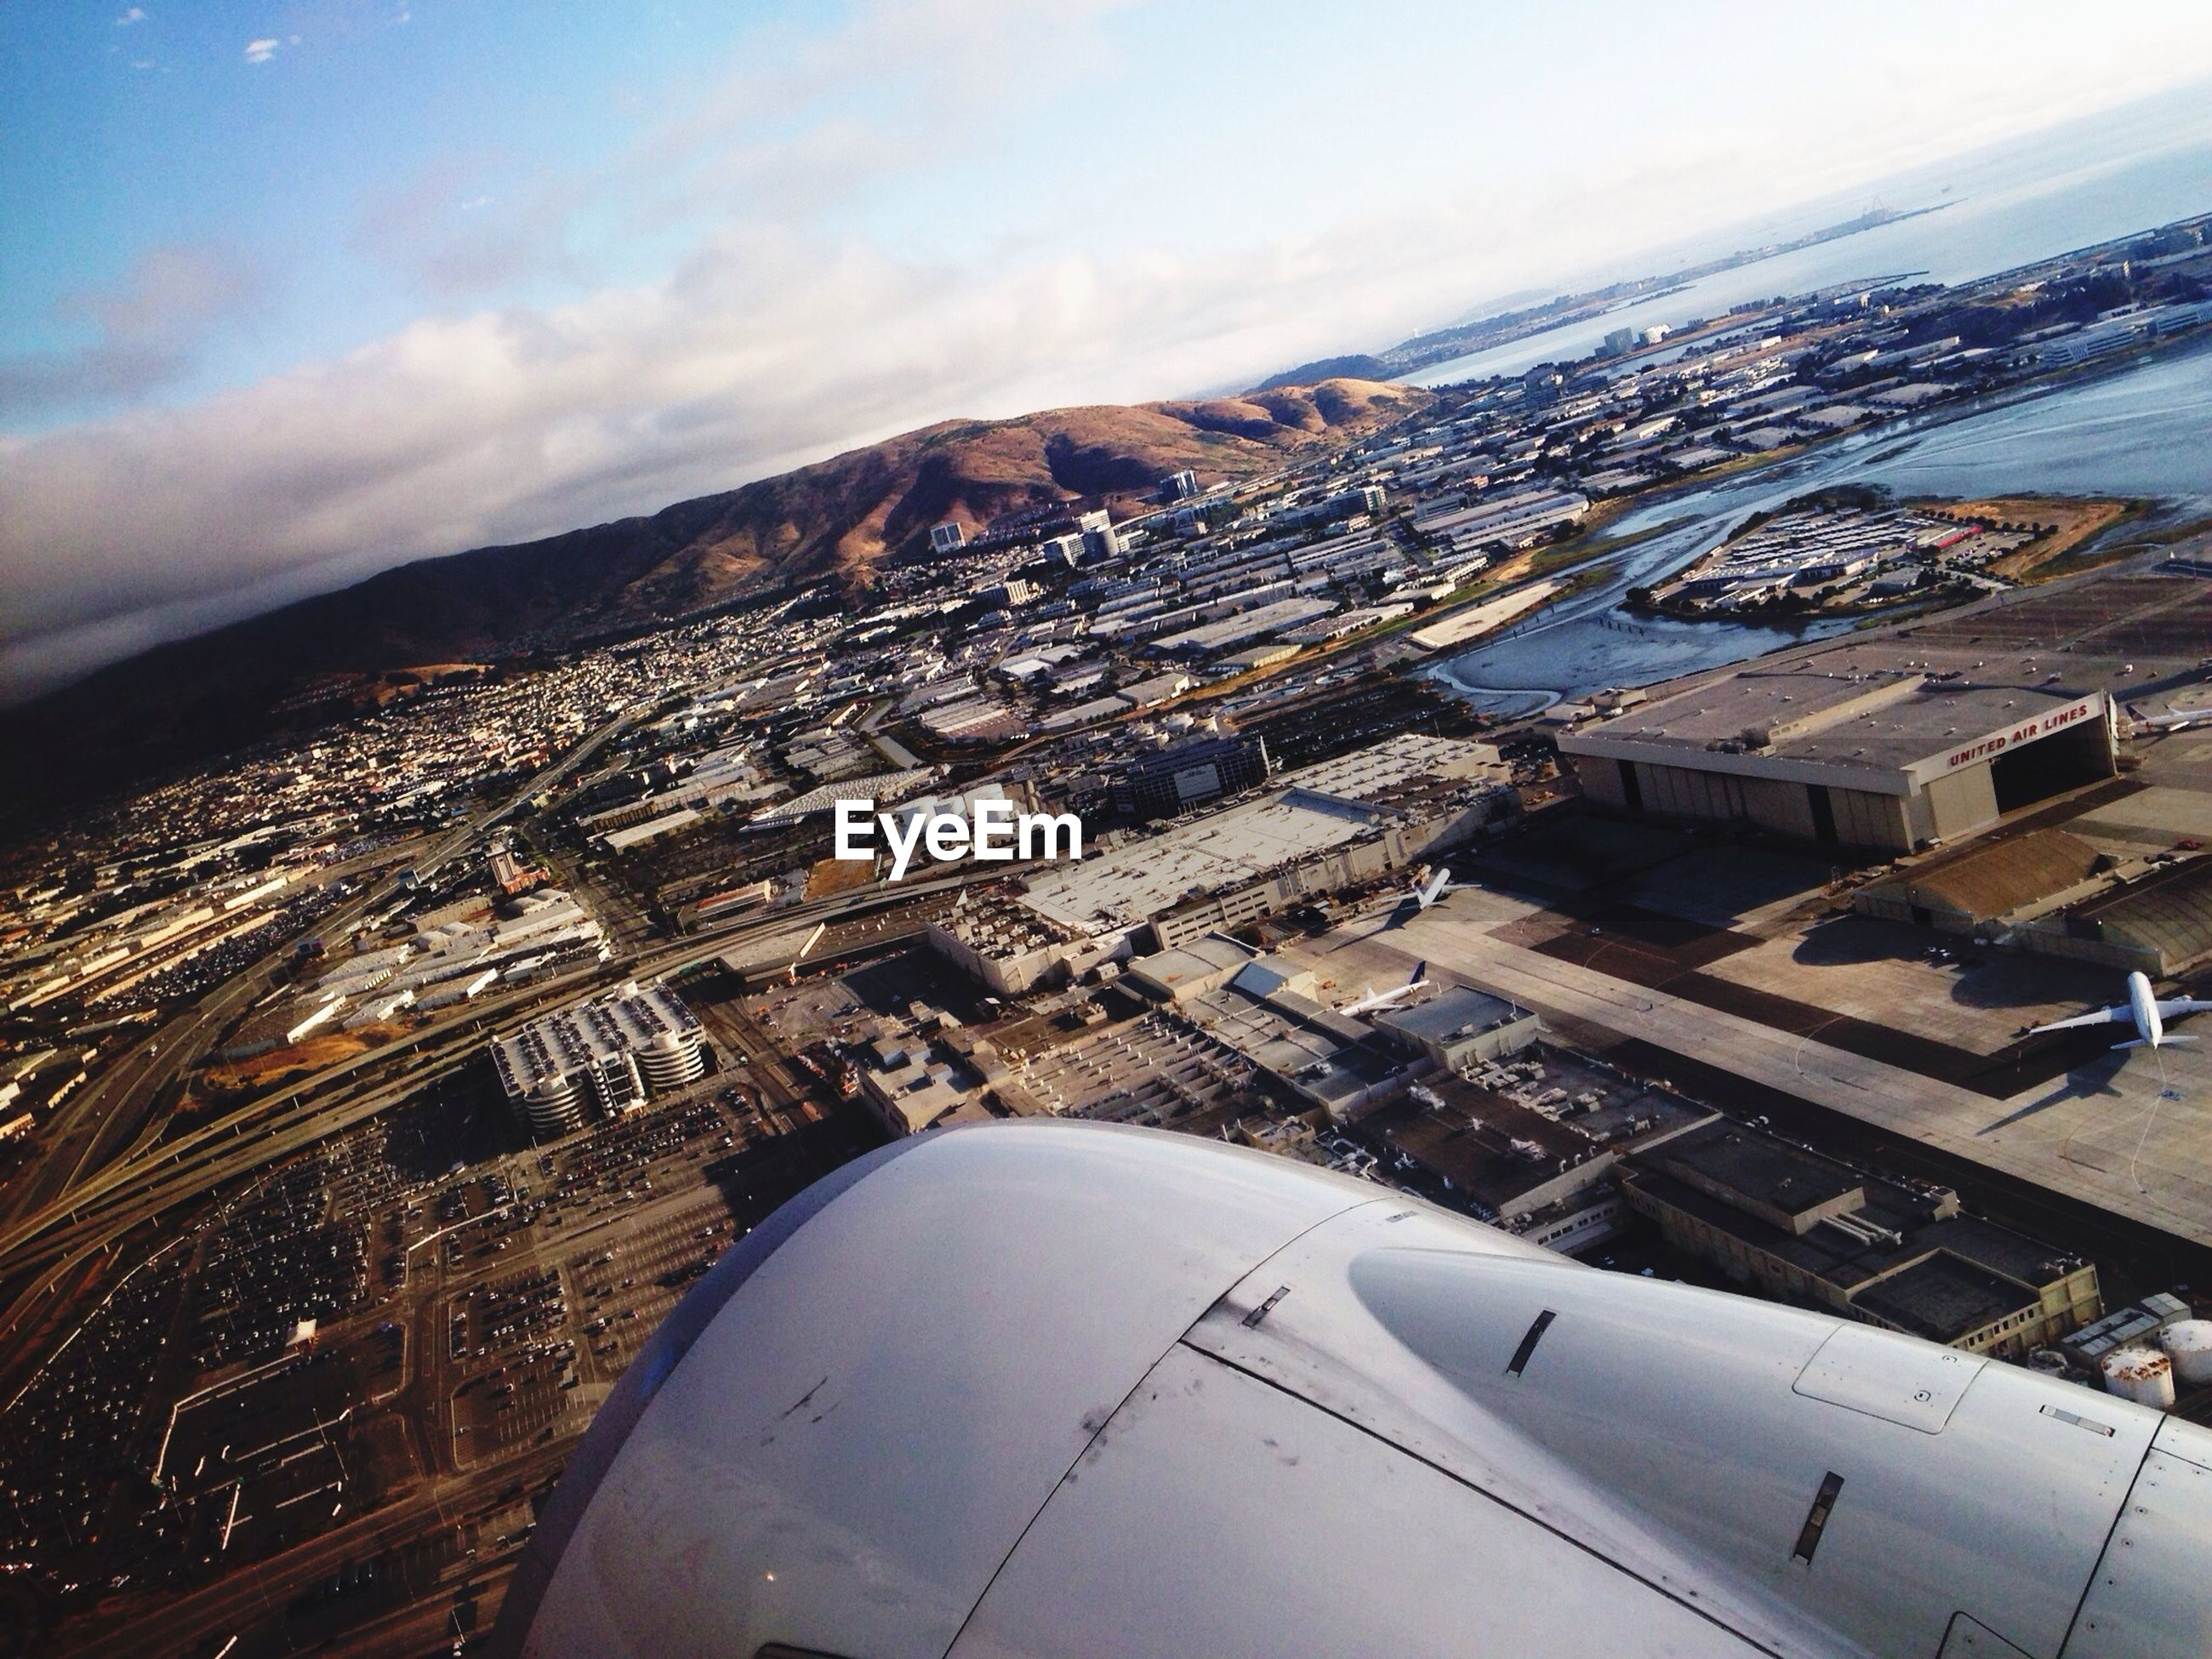 aerial view, airplane, building exterior, air vehicle, cityscape, sky, architecture, aircraft wing, built structure, city, high angle view, cloud - sky, landscape, mode of transport, transportation, crowded, part of, mountain, flying, travel